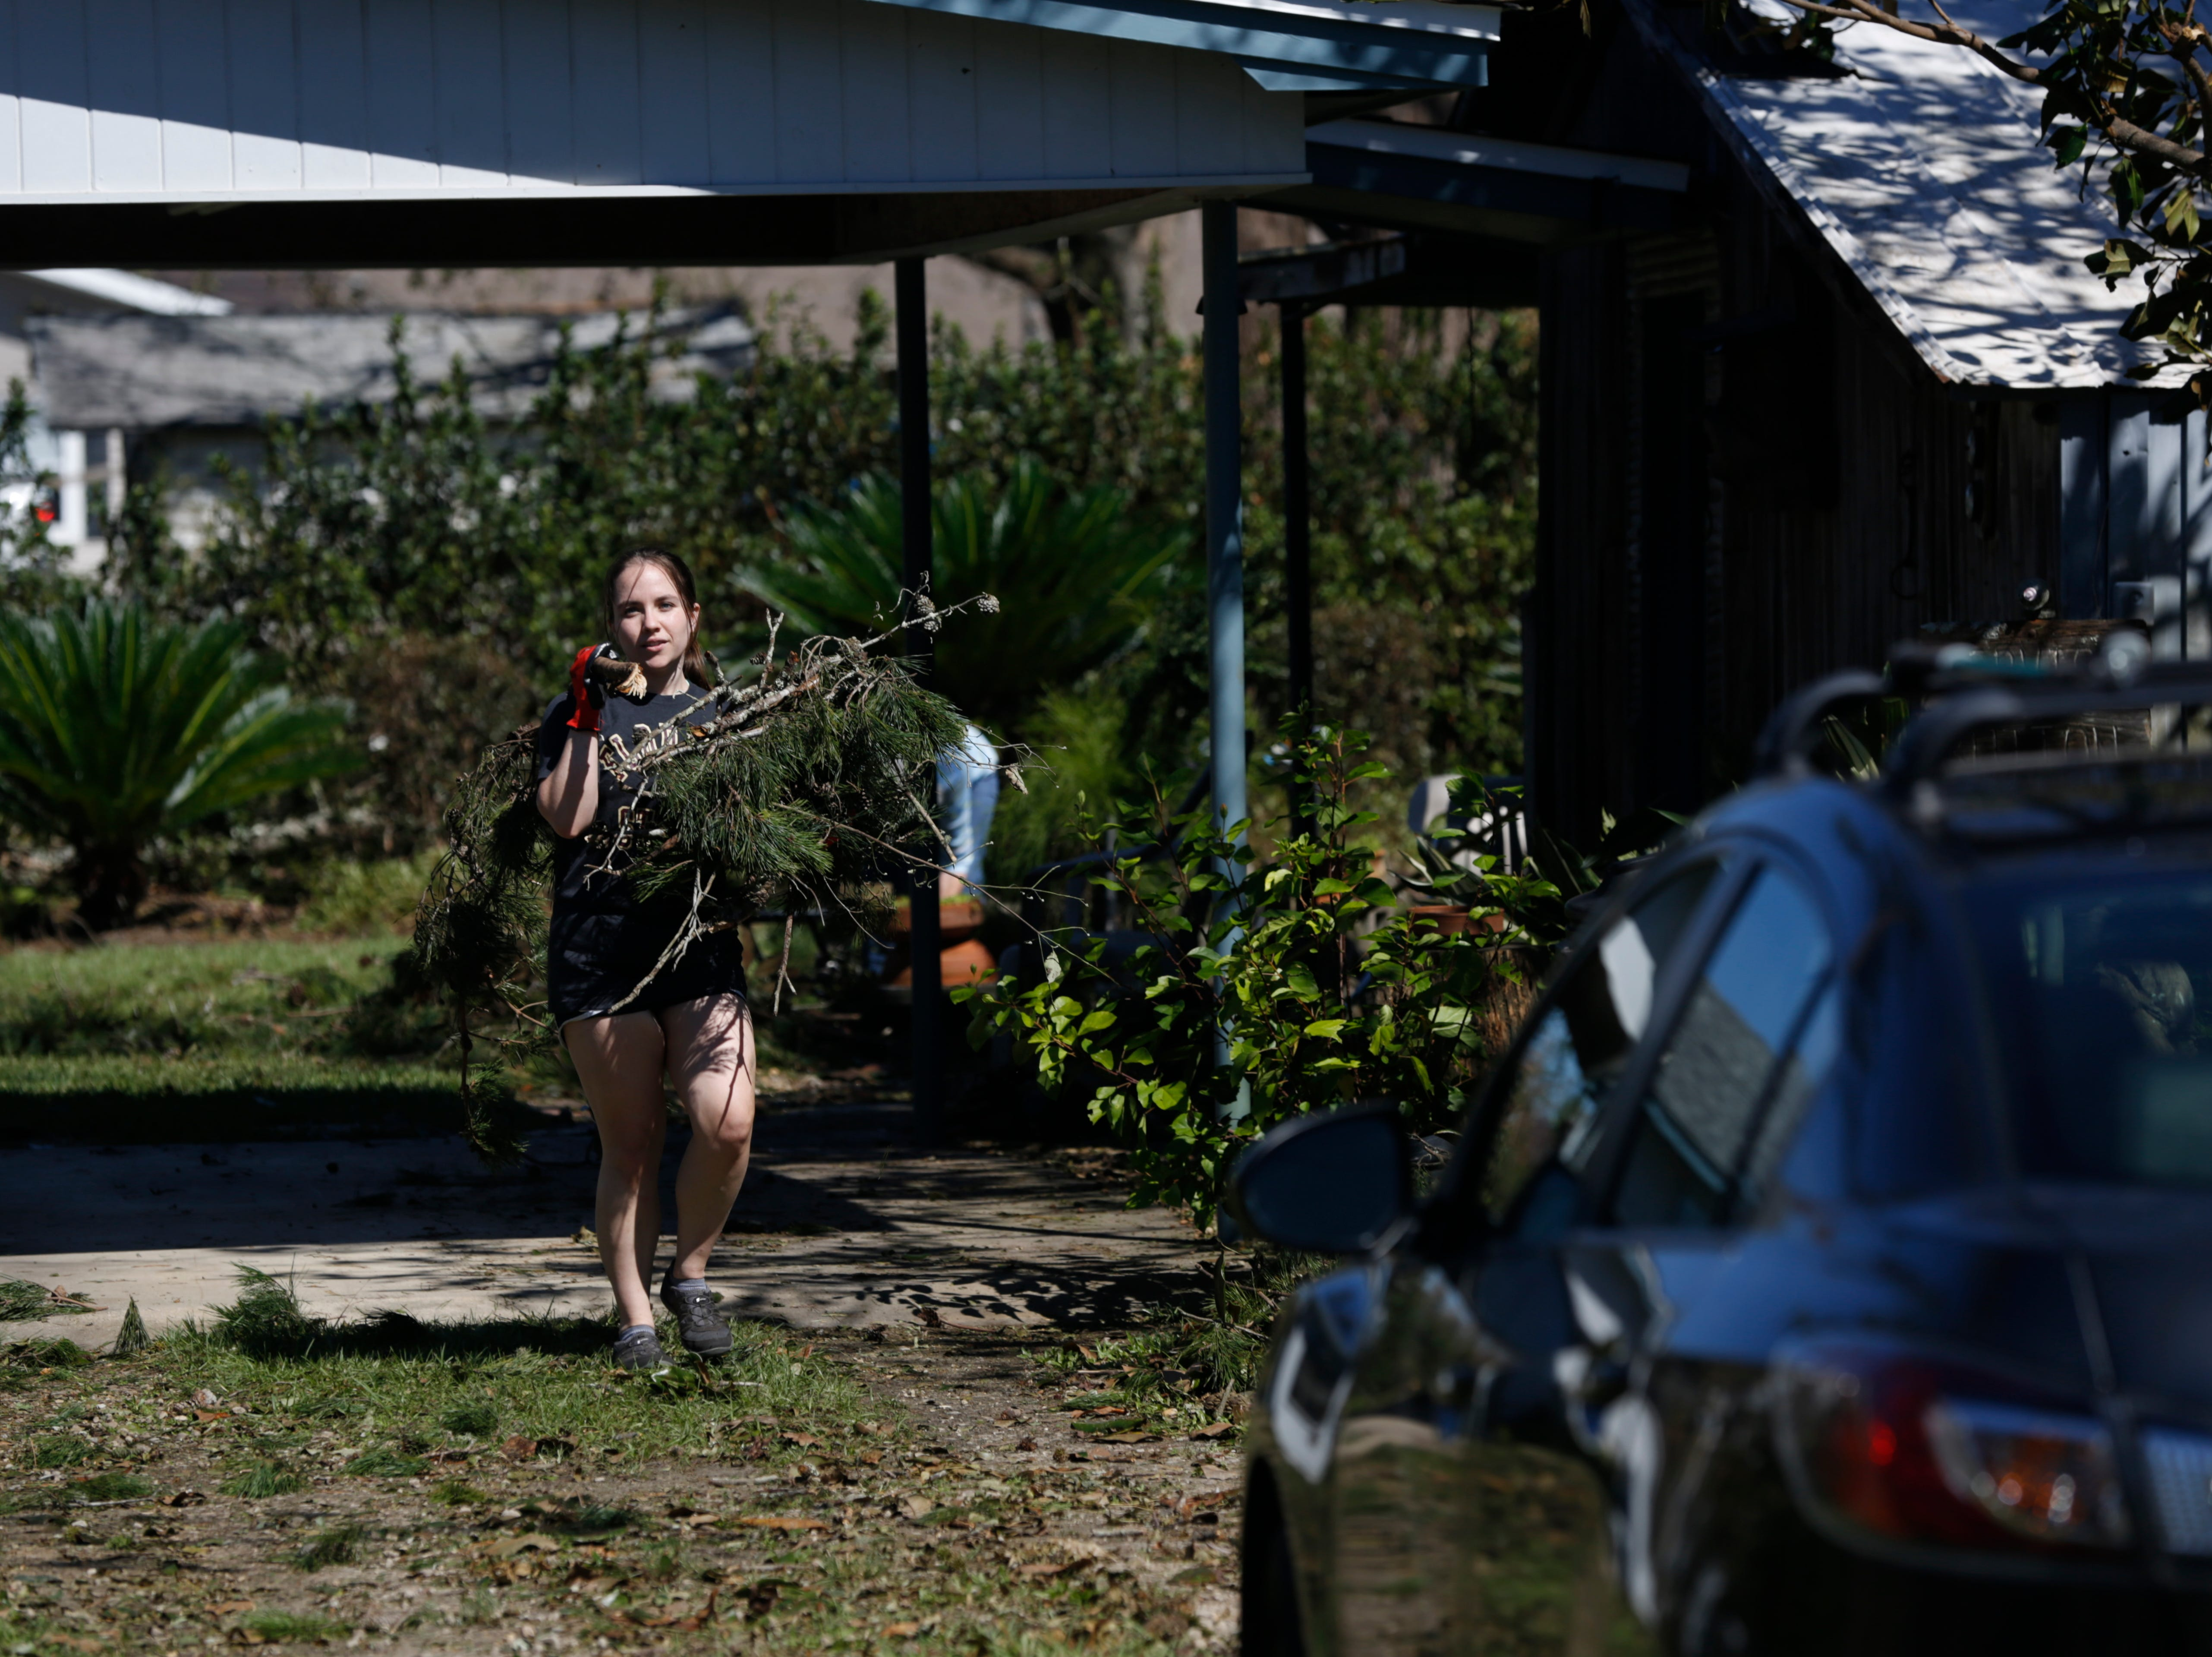 Lynn Phillips help clear branches from the yard of her boyfriend's grandparents in Blountstown, Fla. in the aftermath of Hurricane Michael Friday, Oct. 12, 2018.